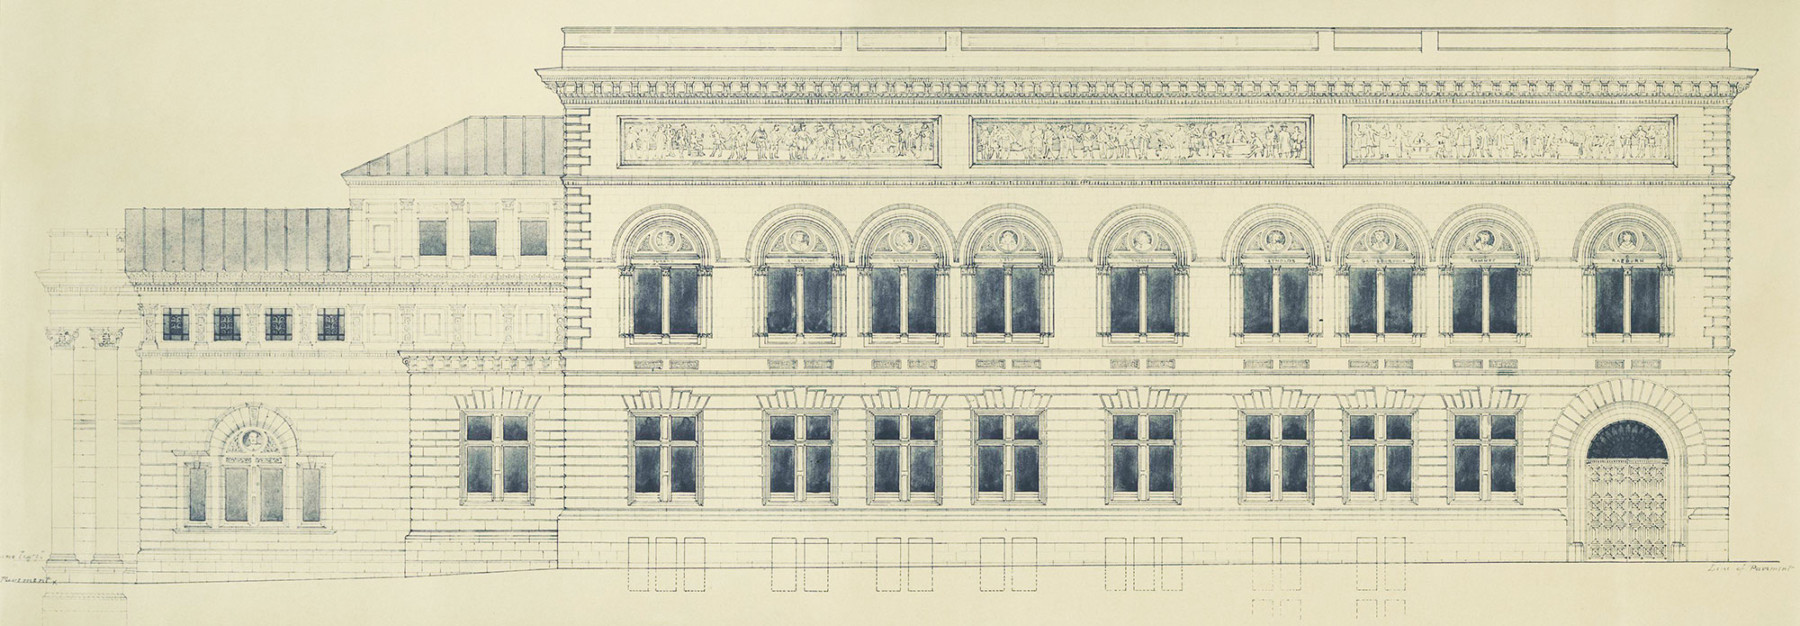 National-portrait-gallery-north-elevation-ewan-christian